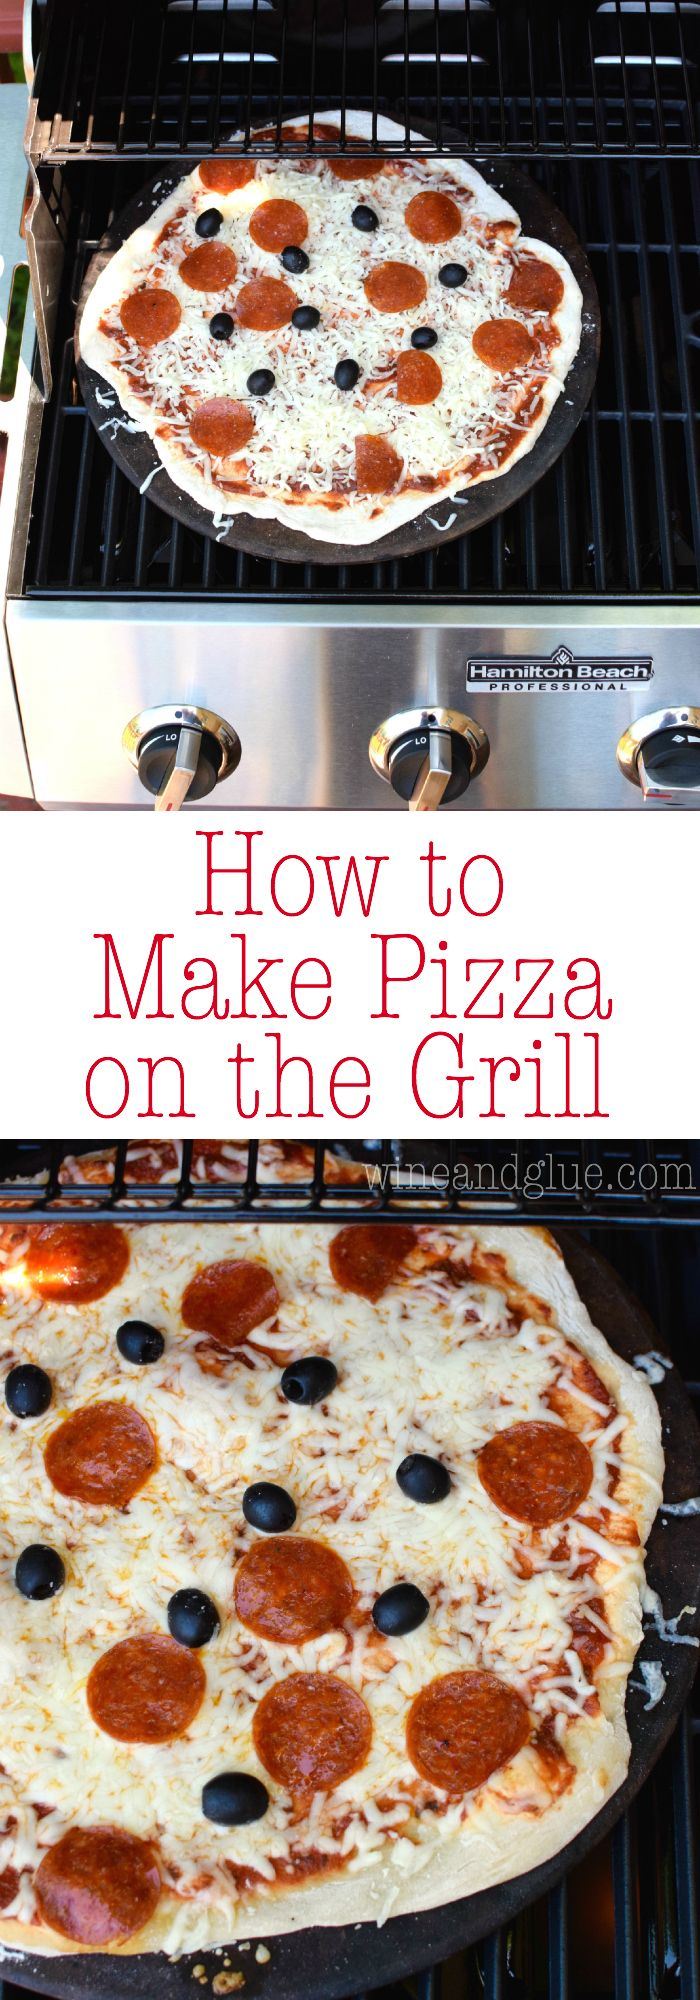 How to Make Pizza on the Grill! This is our absolute favorite way to make pizza, and we do it once a week in the summer.: